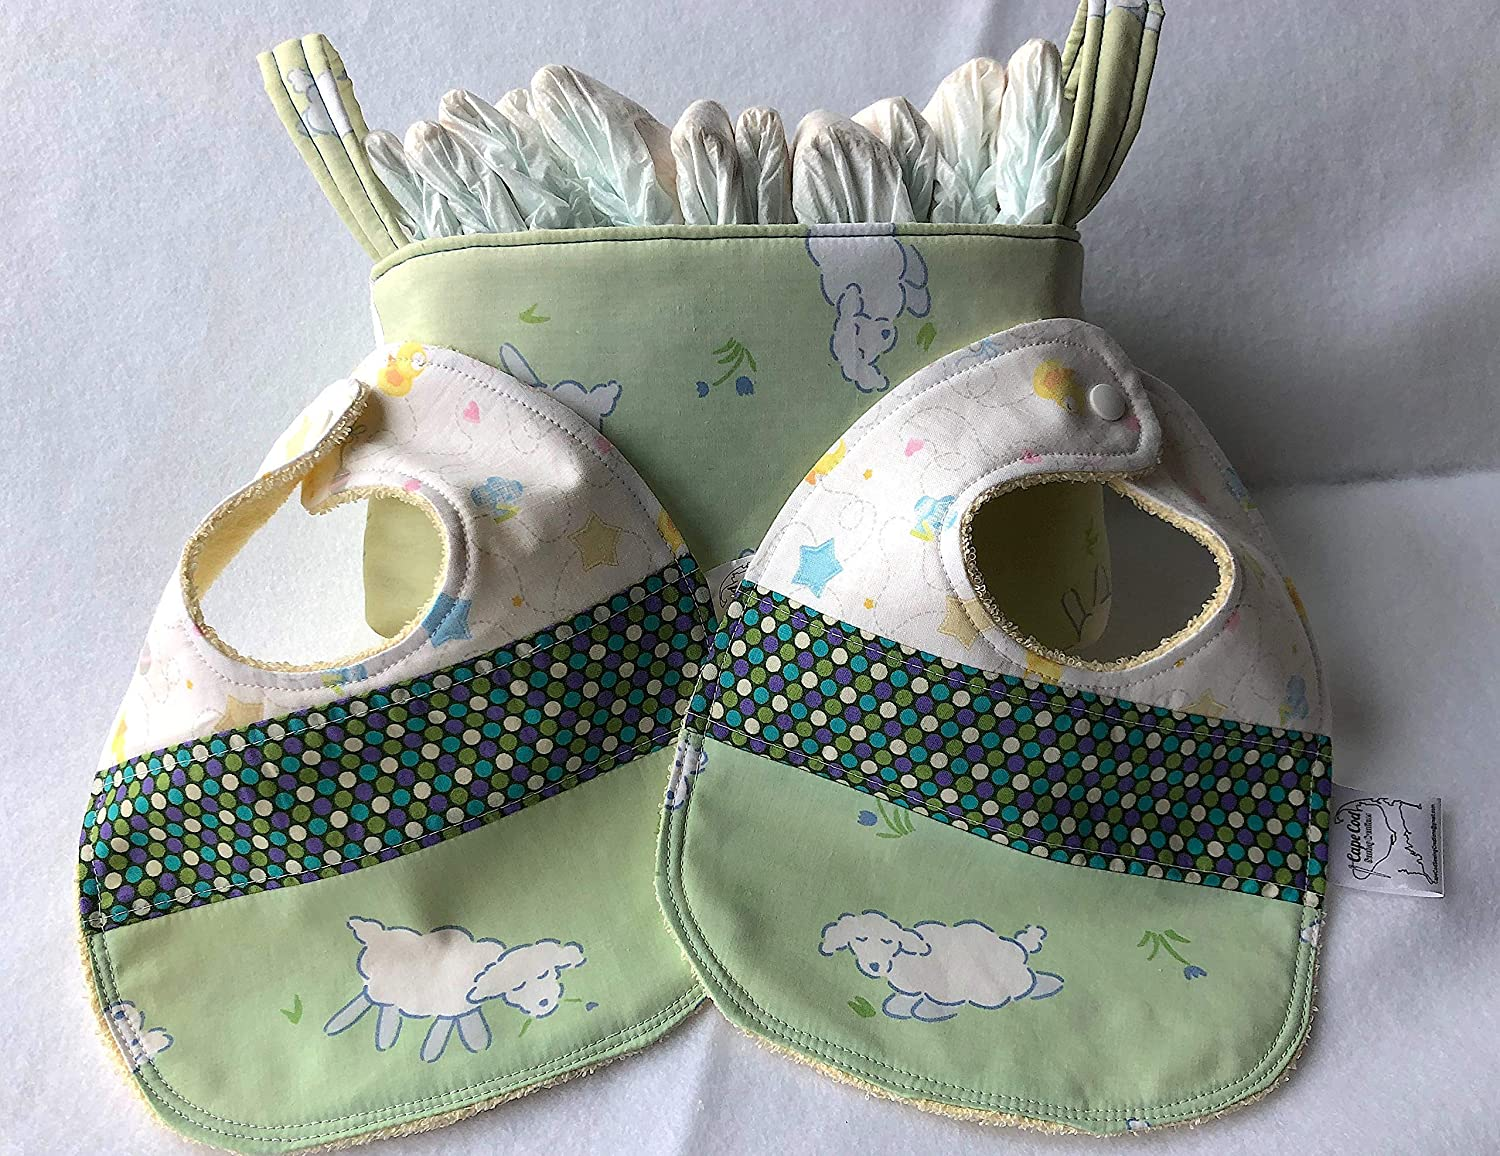 Reversible Diaper OFFicial mail Arlington Mall order Nappy Storage Caddy Baby Bibs Shower and